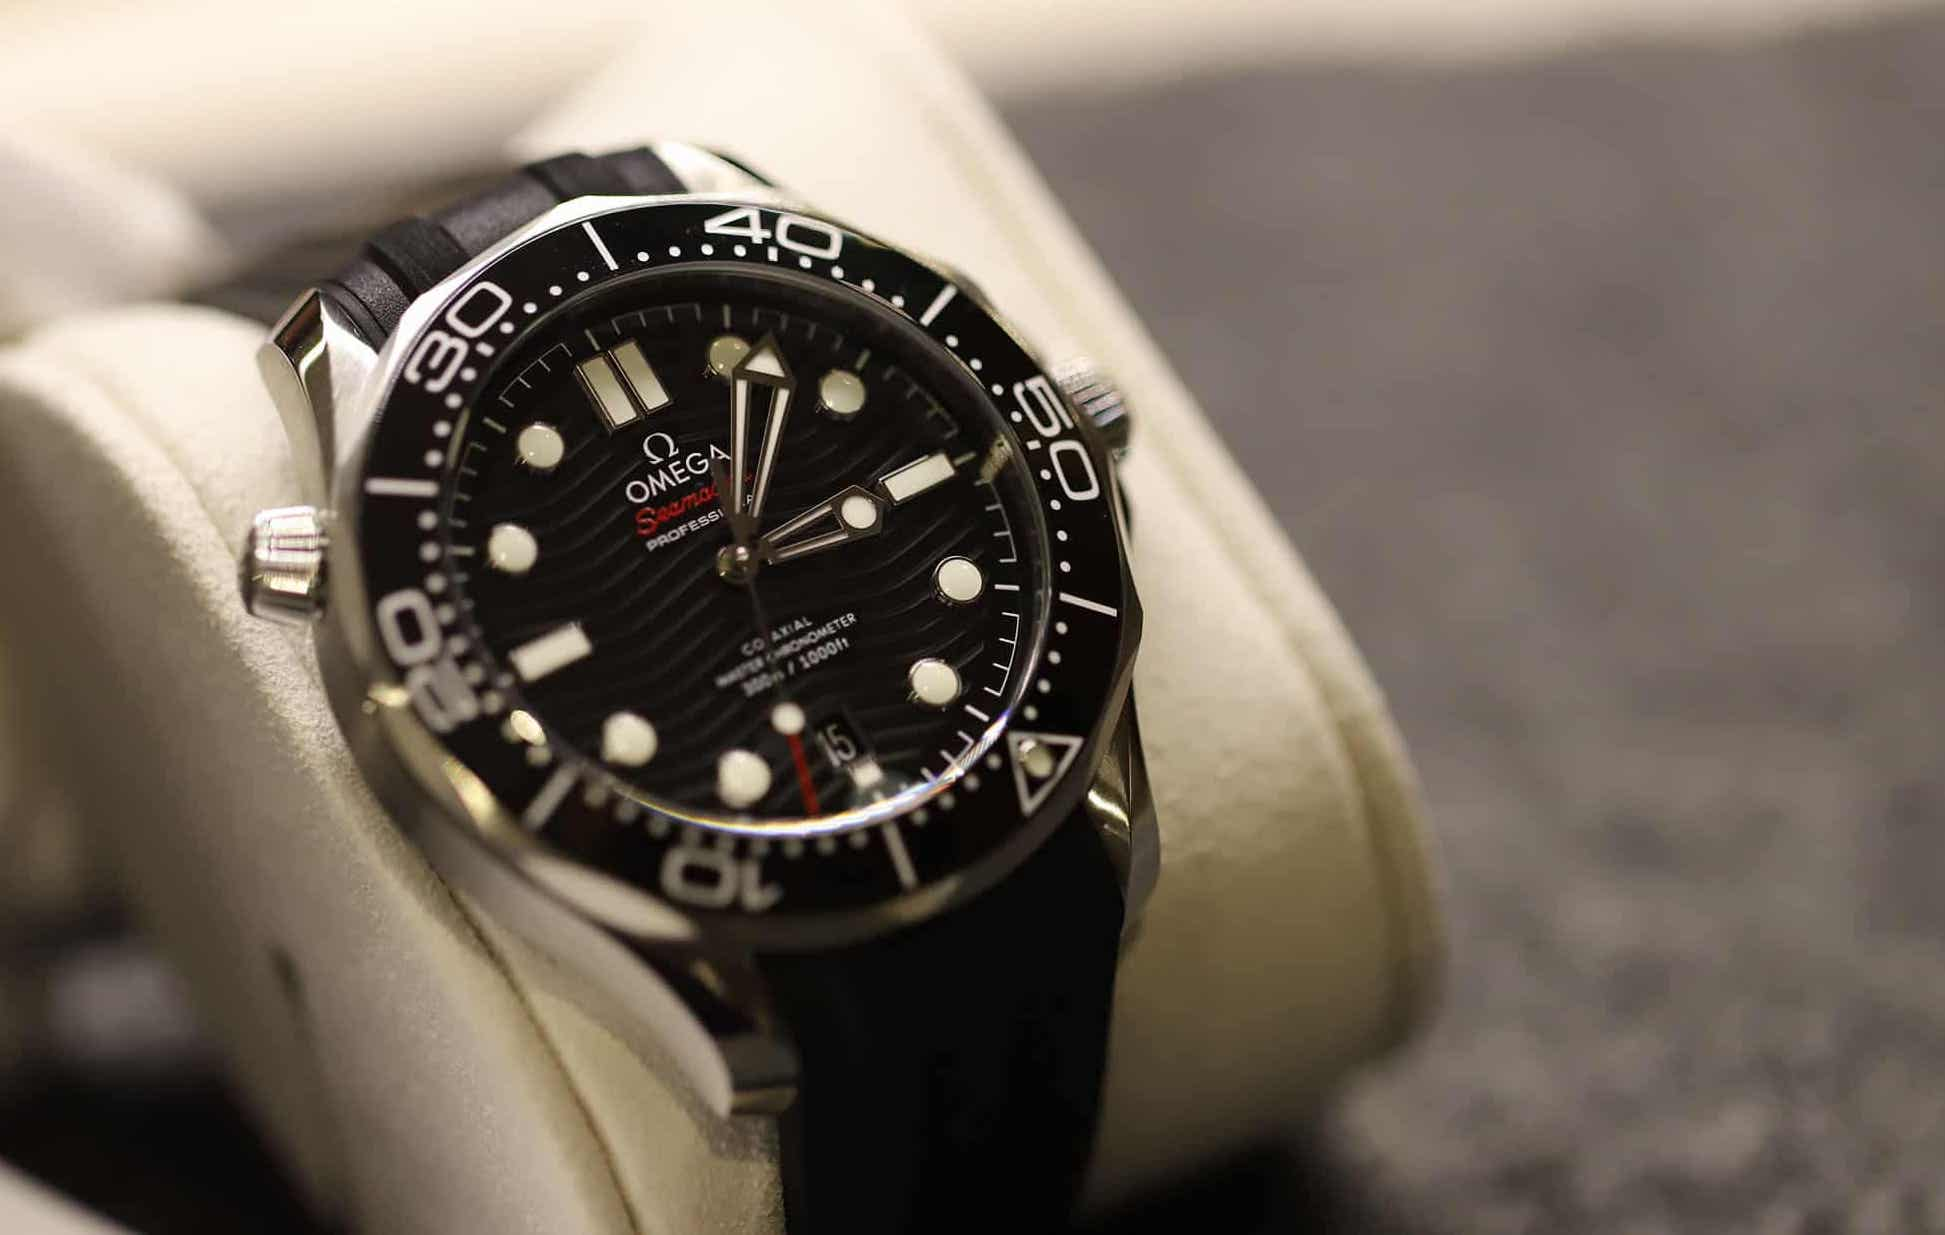 d50929db8ce FIRST LOOK  THE 2018 OMEGA SEAMASTER 300M CO-AXIAL MASTER CHRONOMETER  COLLECTION